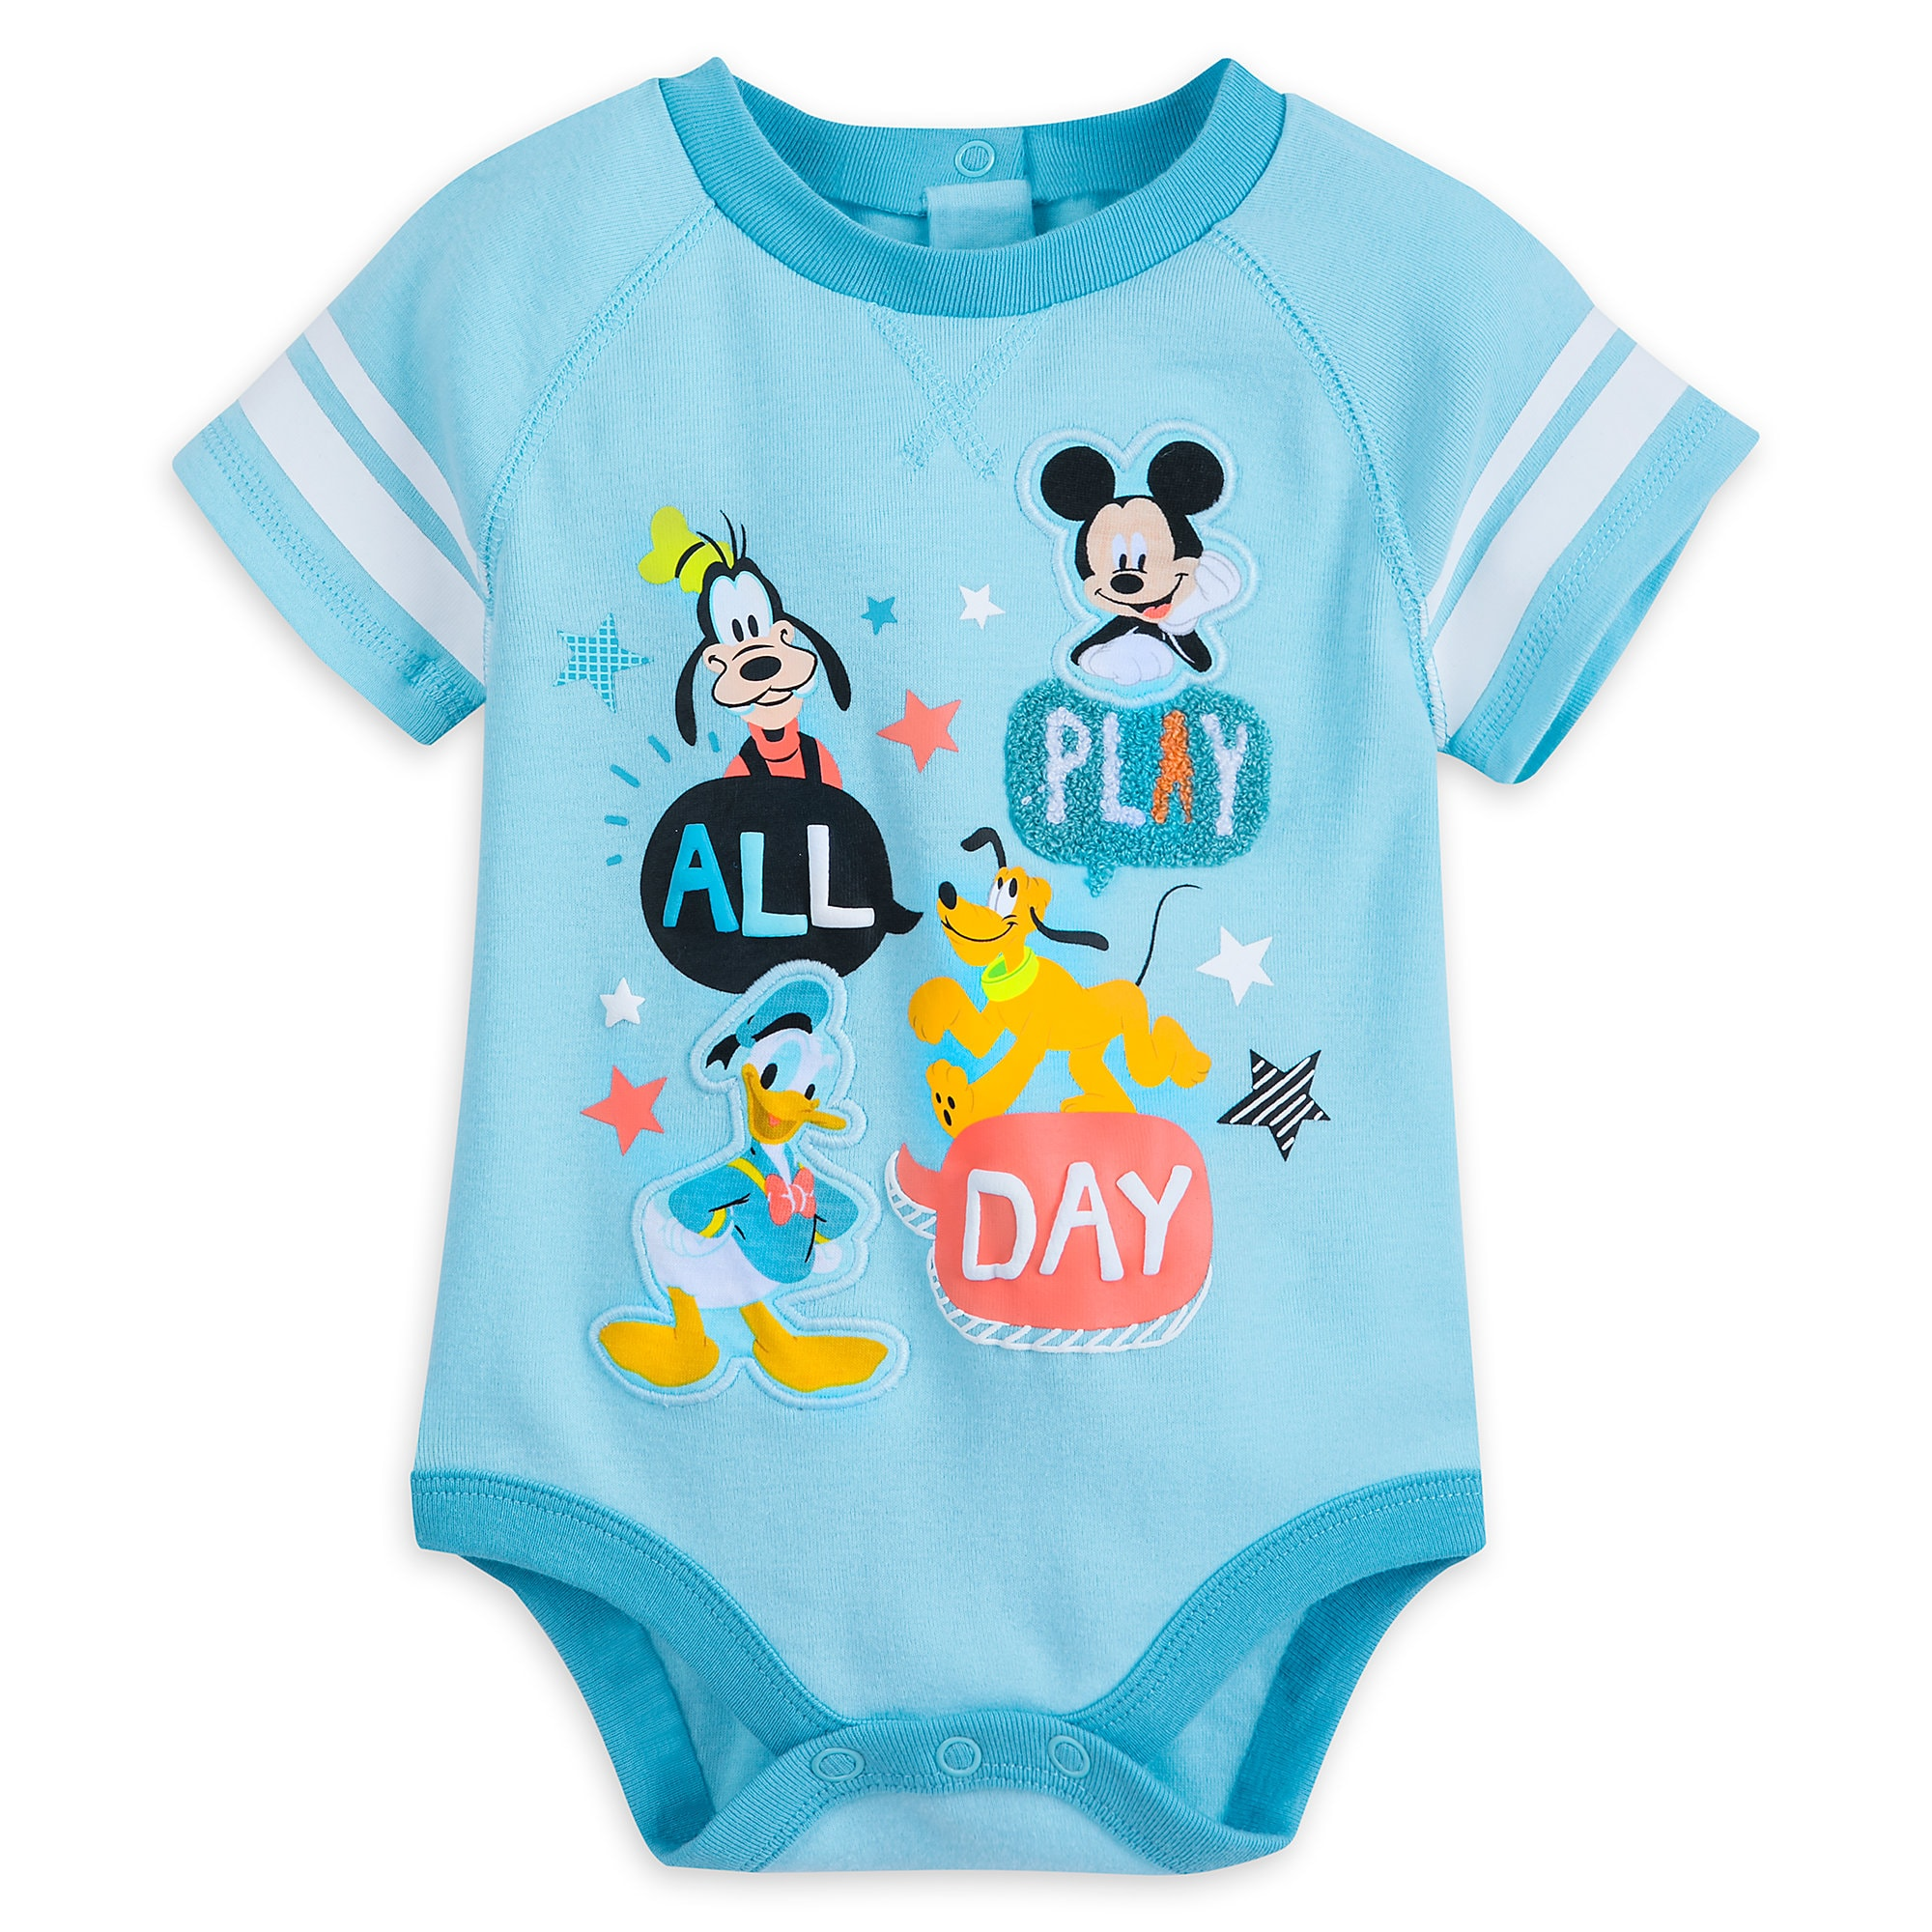 Mickey Mouse and Friends Cuddly Bodysuit for Baby